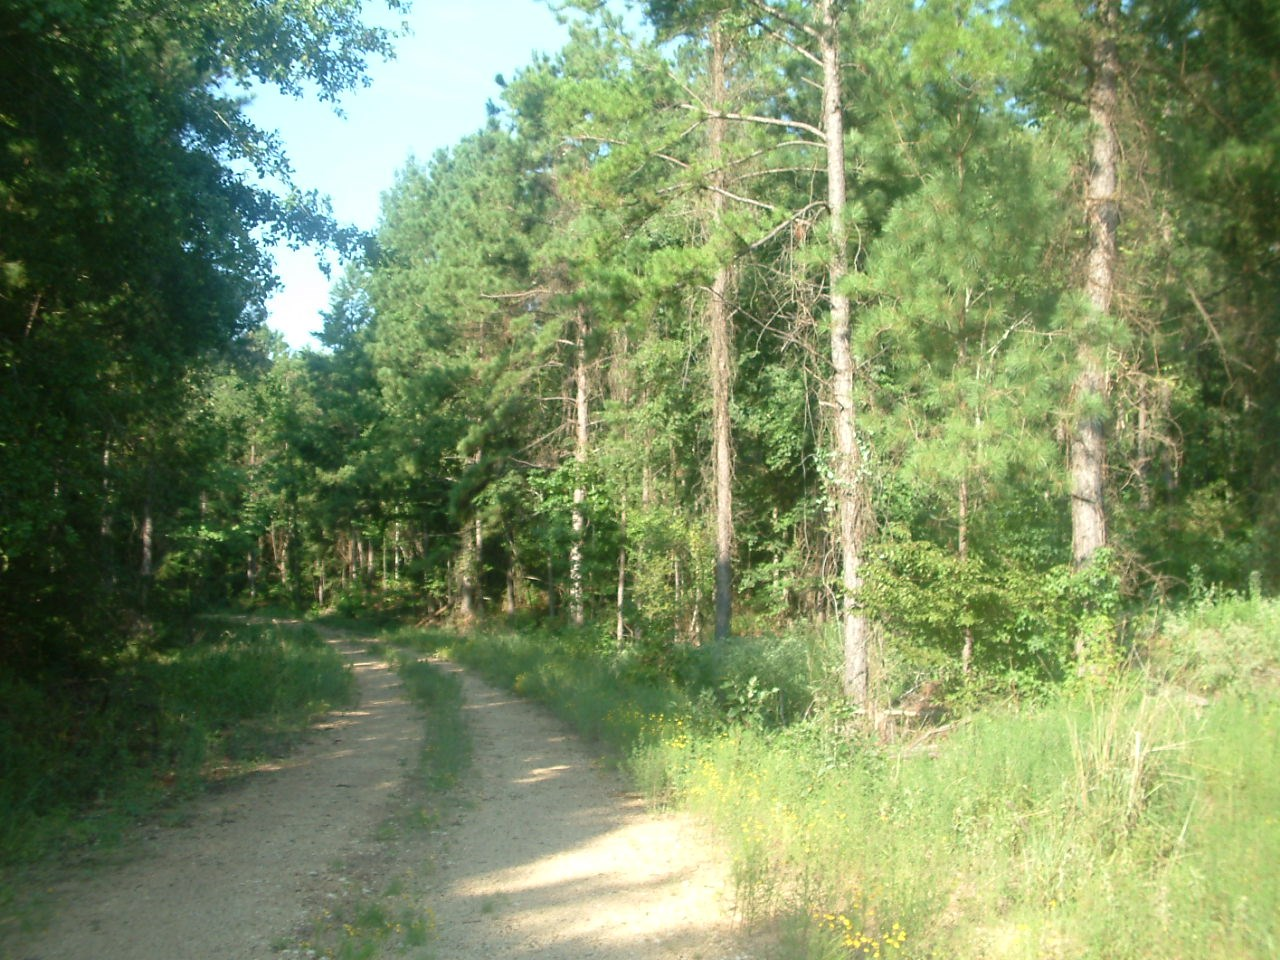 233 AC HUNTING RECREATION TIMBER LAND FOR SALE RUSK COUNTY